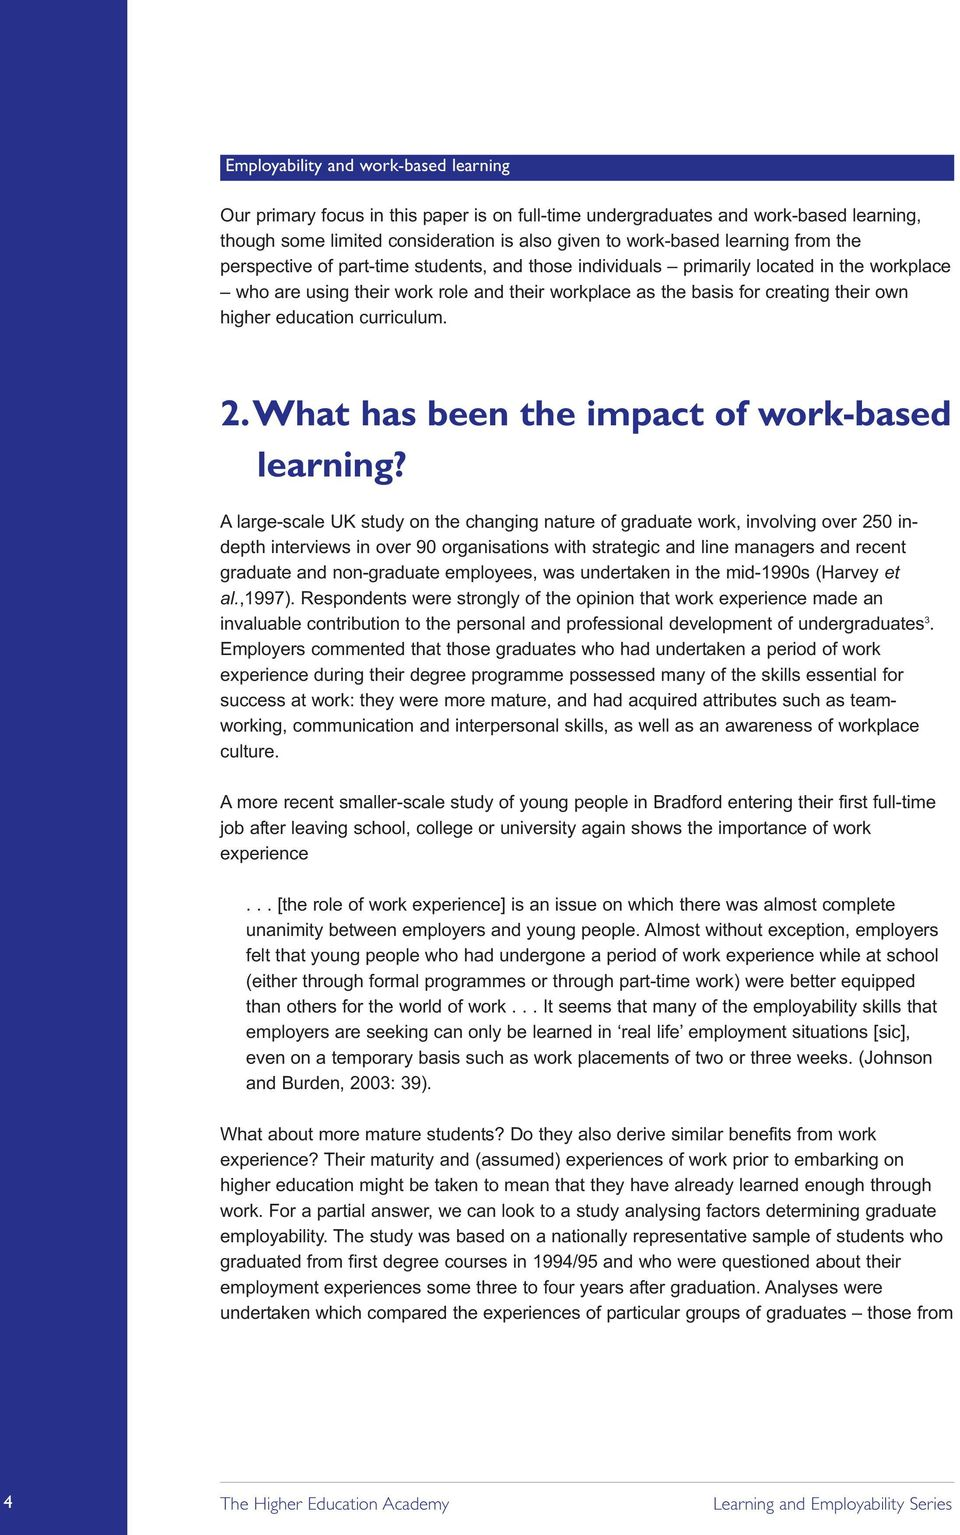 What has been the impact of work-based learning?